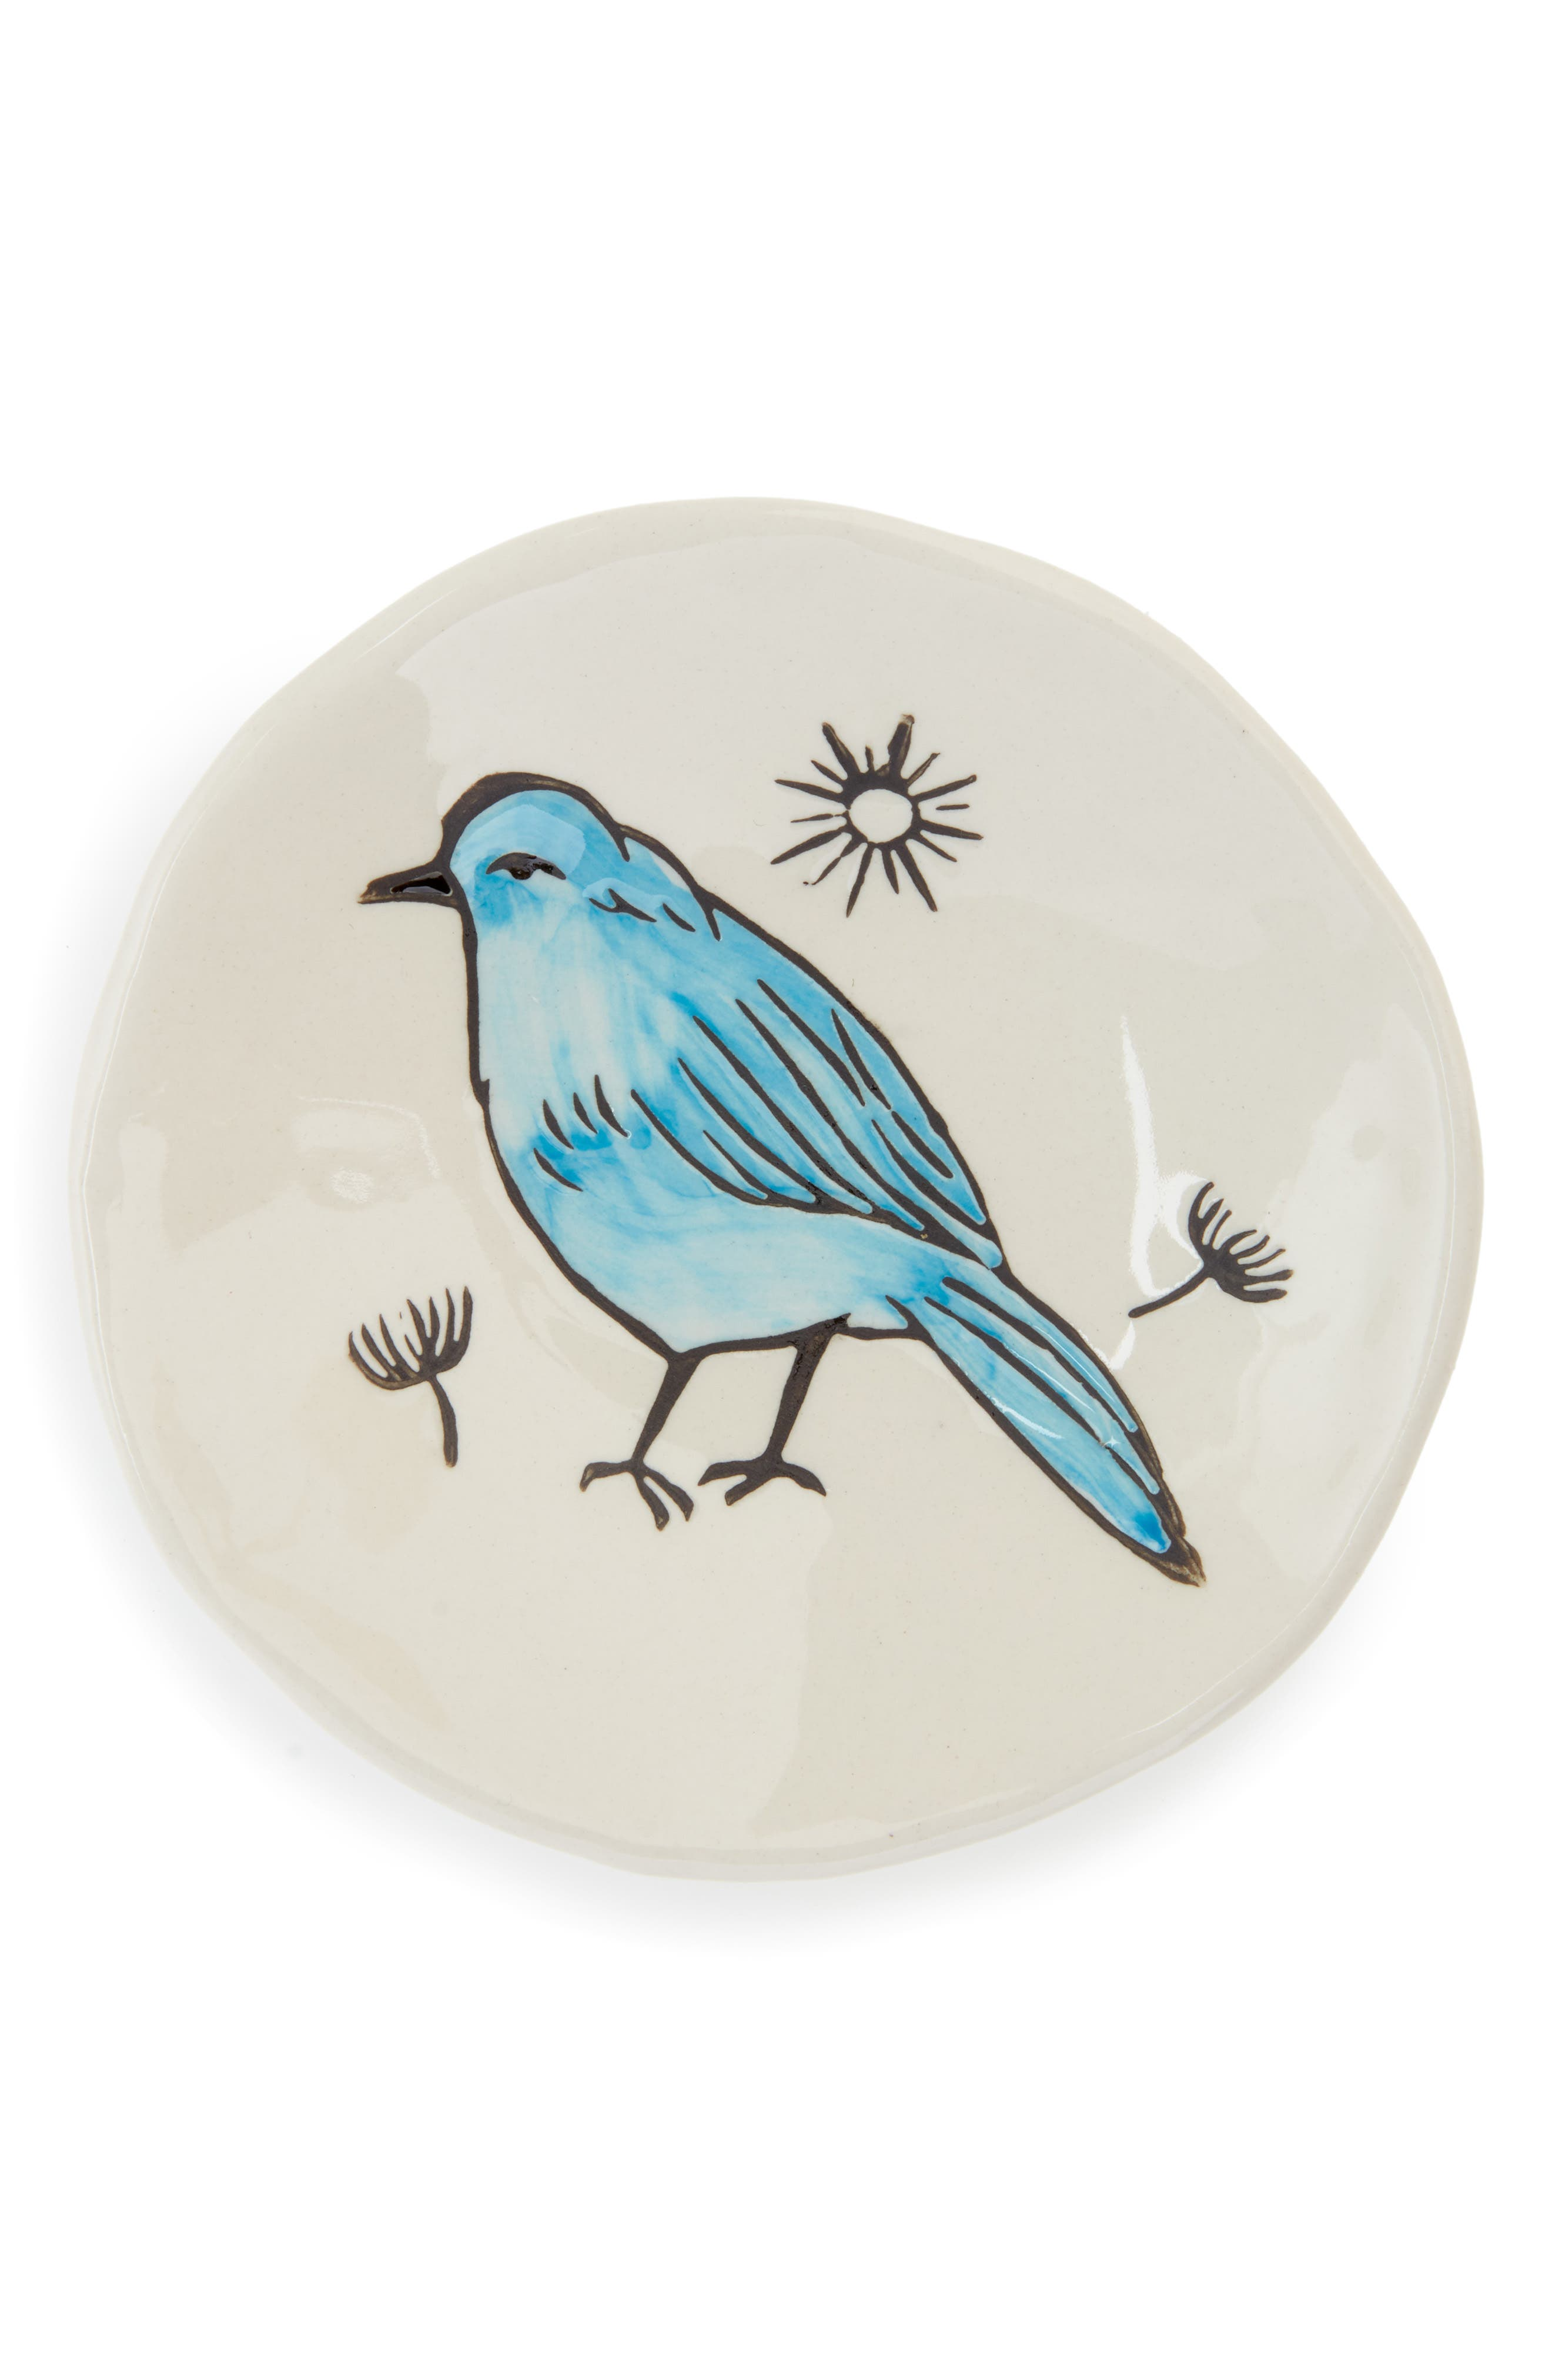 Small Bird Plate,                         Main,                         color, White